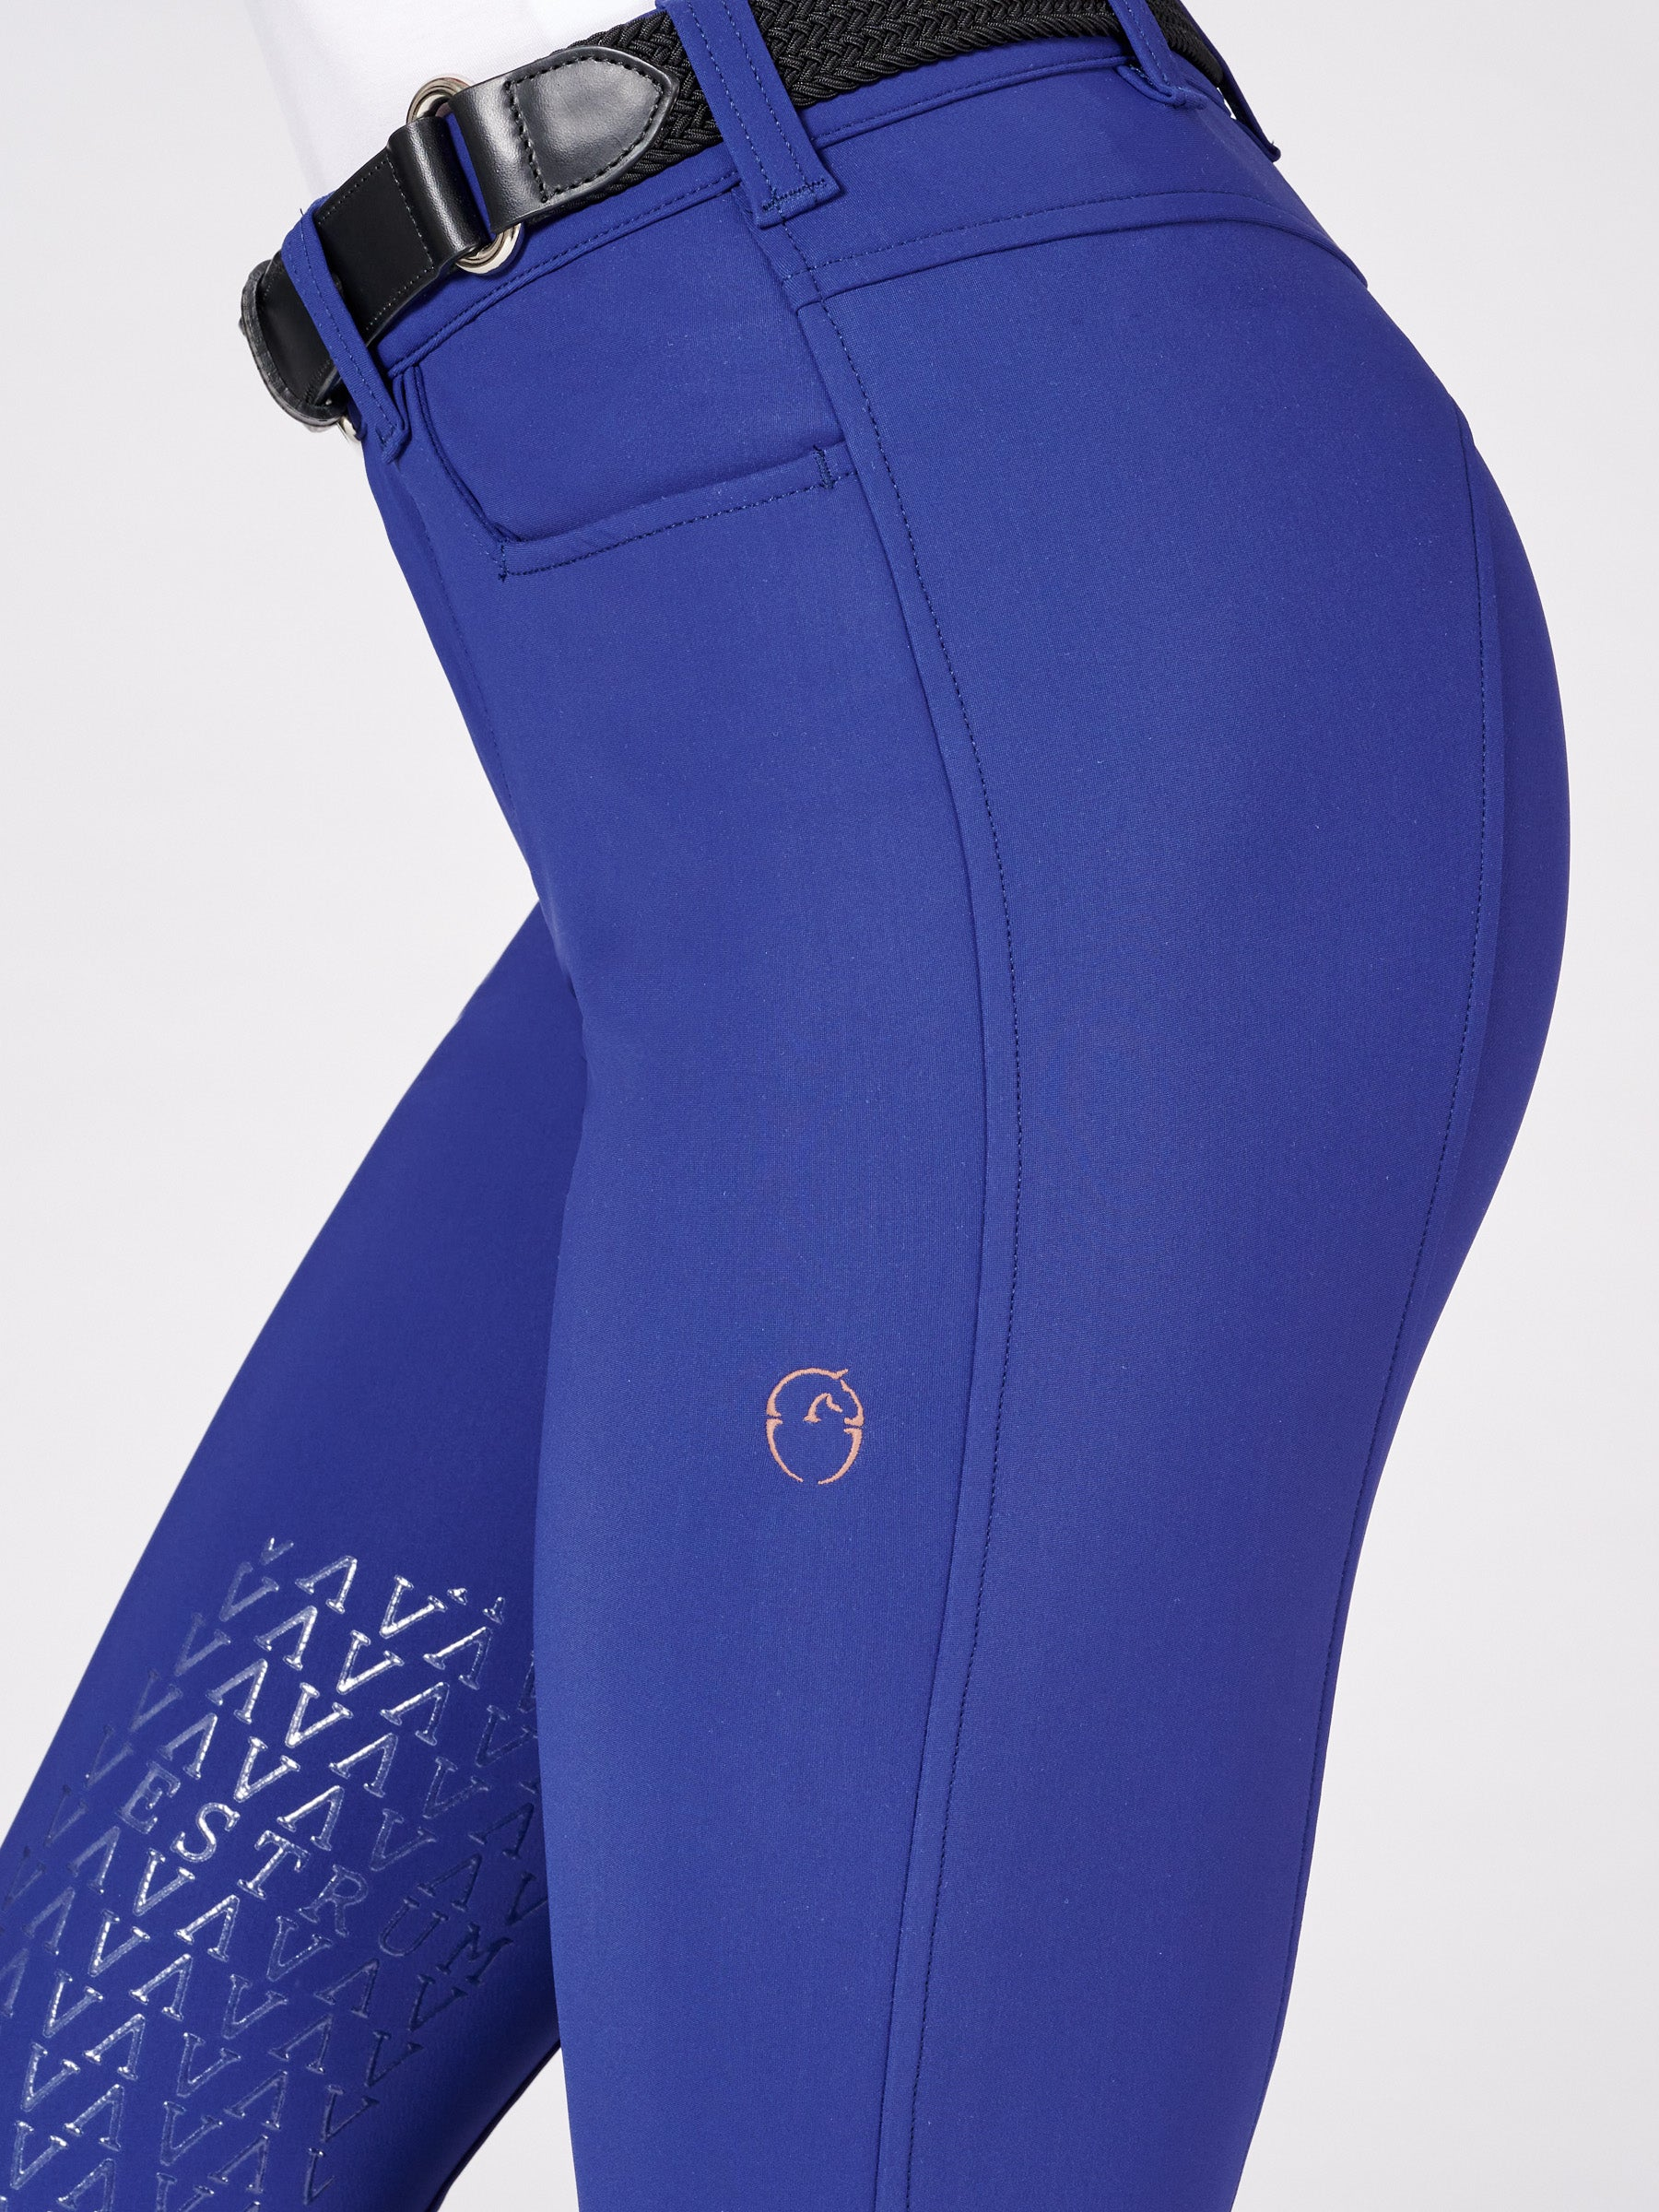 Vestrum Coblenza knee grip breeches